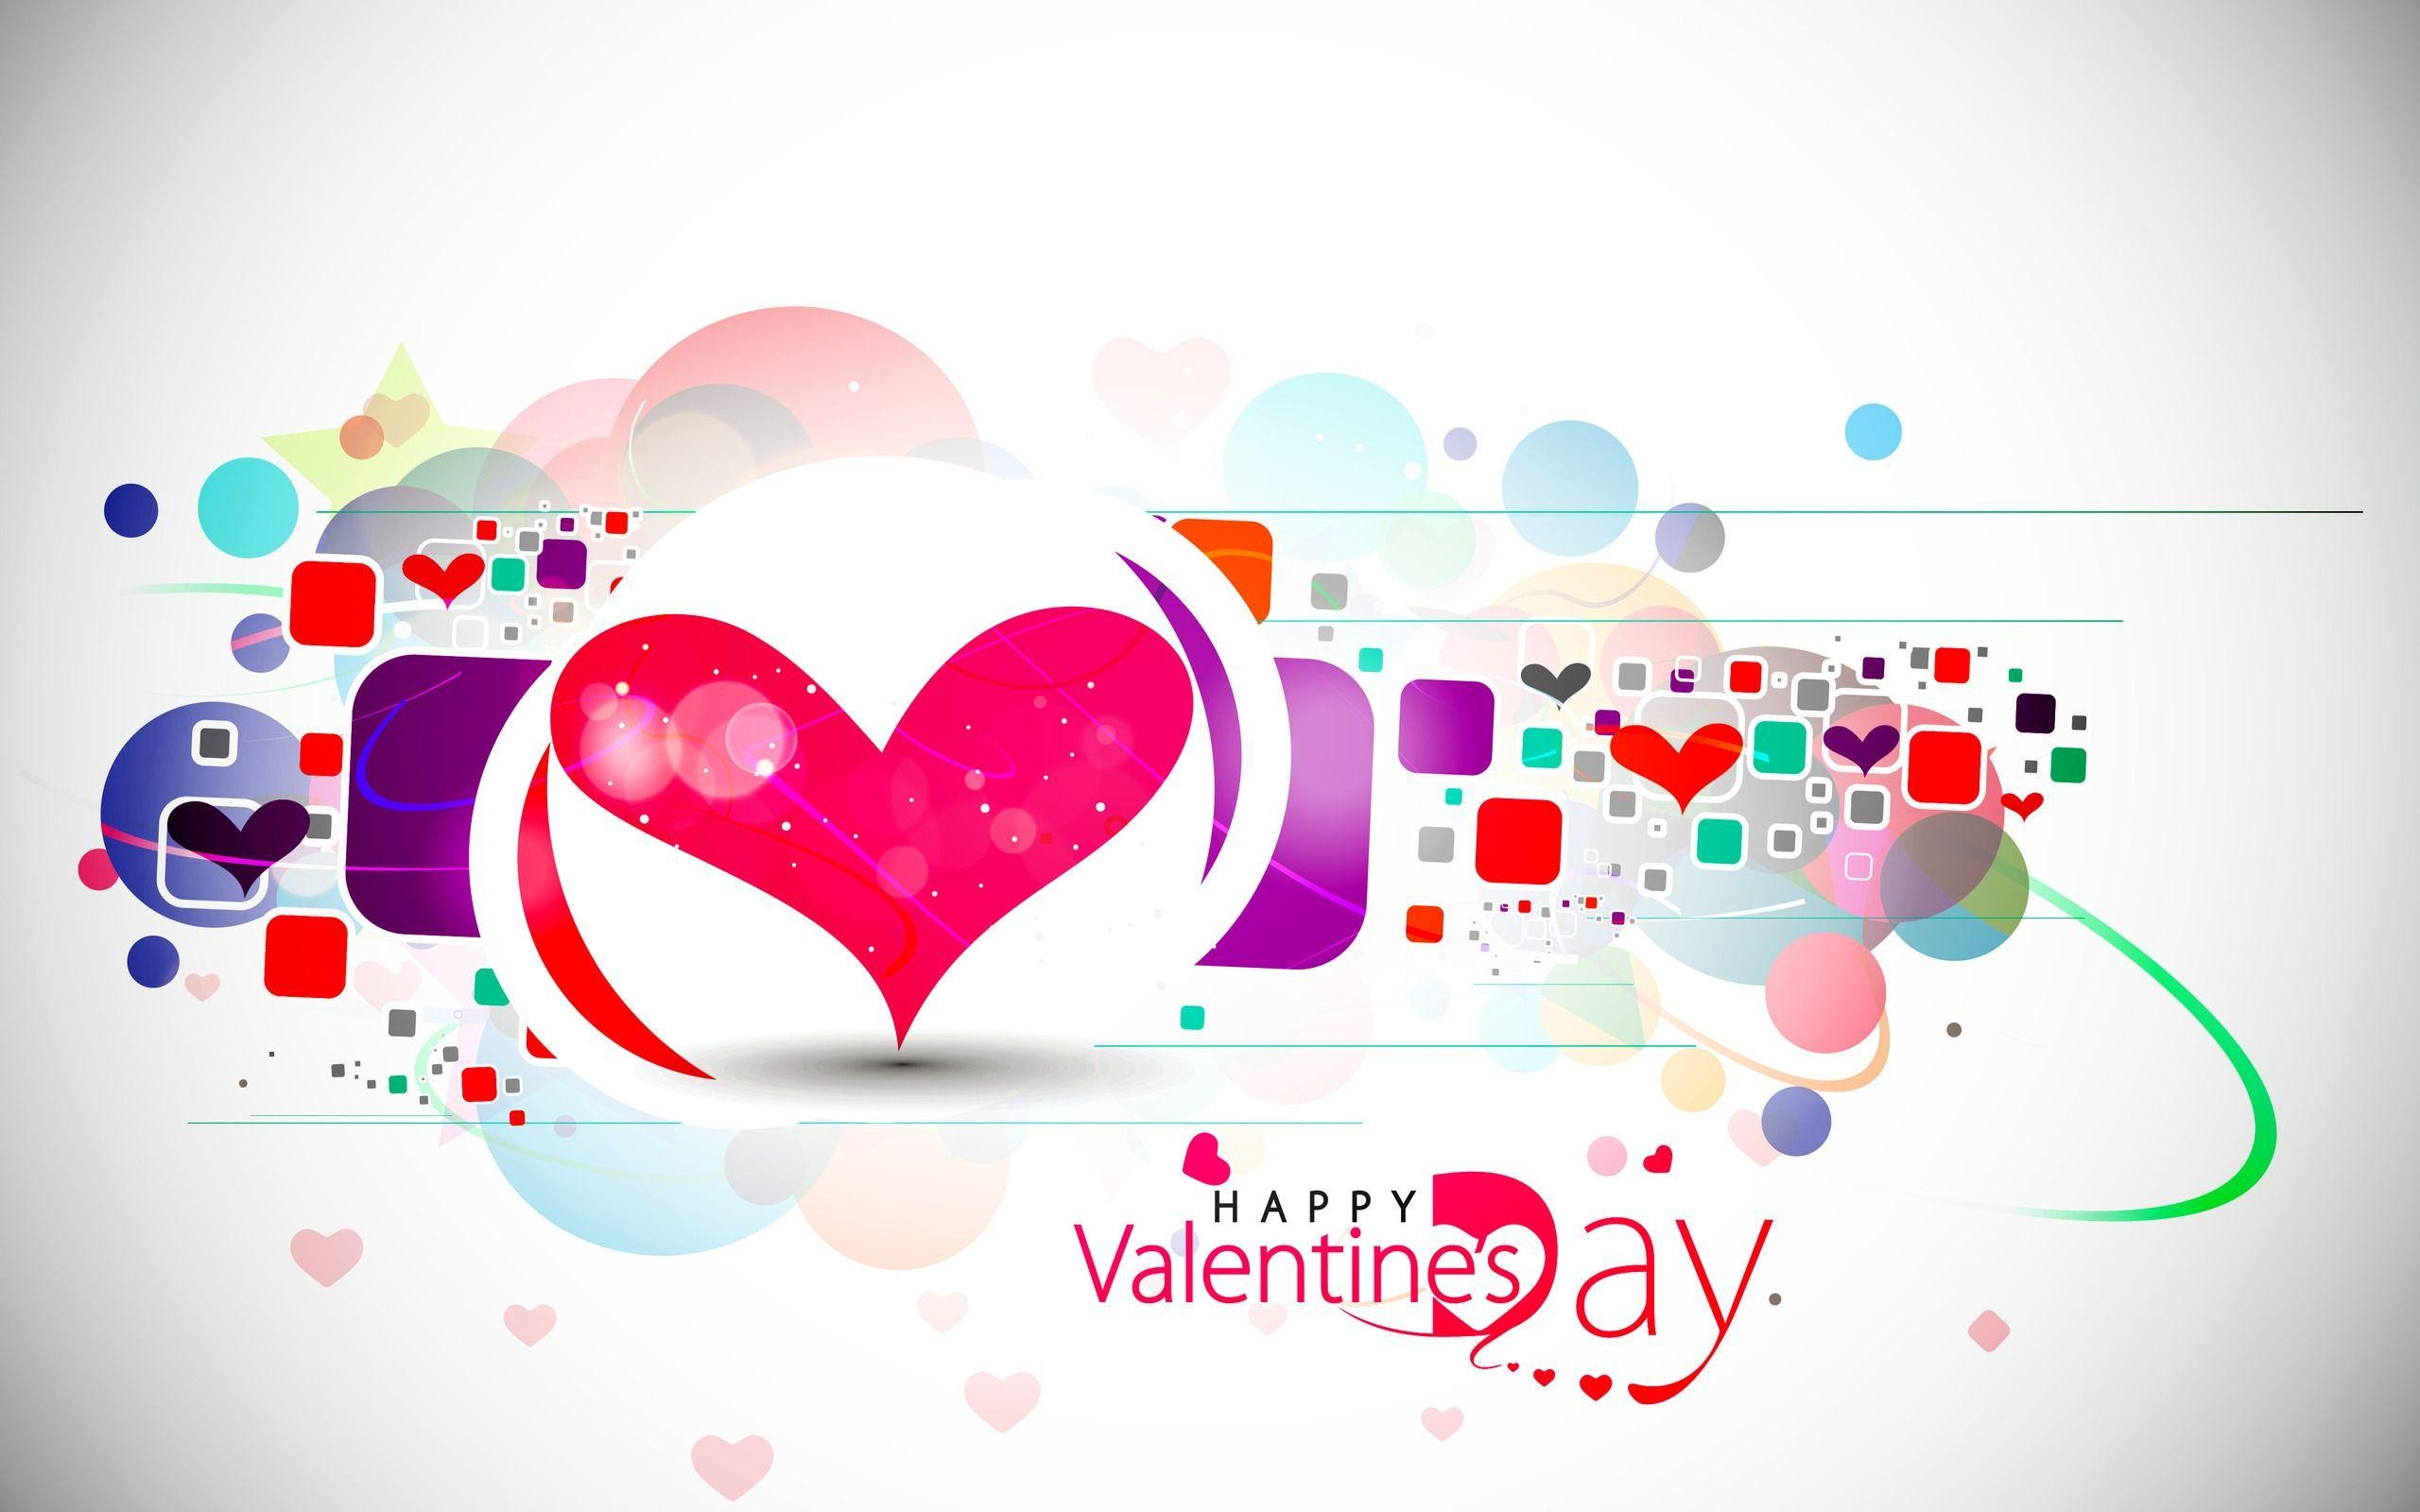 2560x1600 794 best Valentine's Day Wallpapers!! images on Pinterest